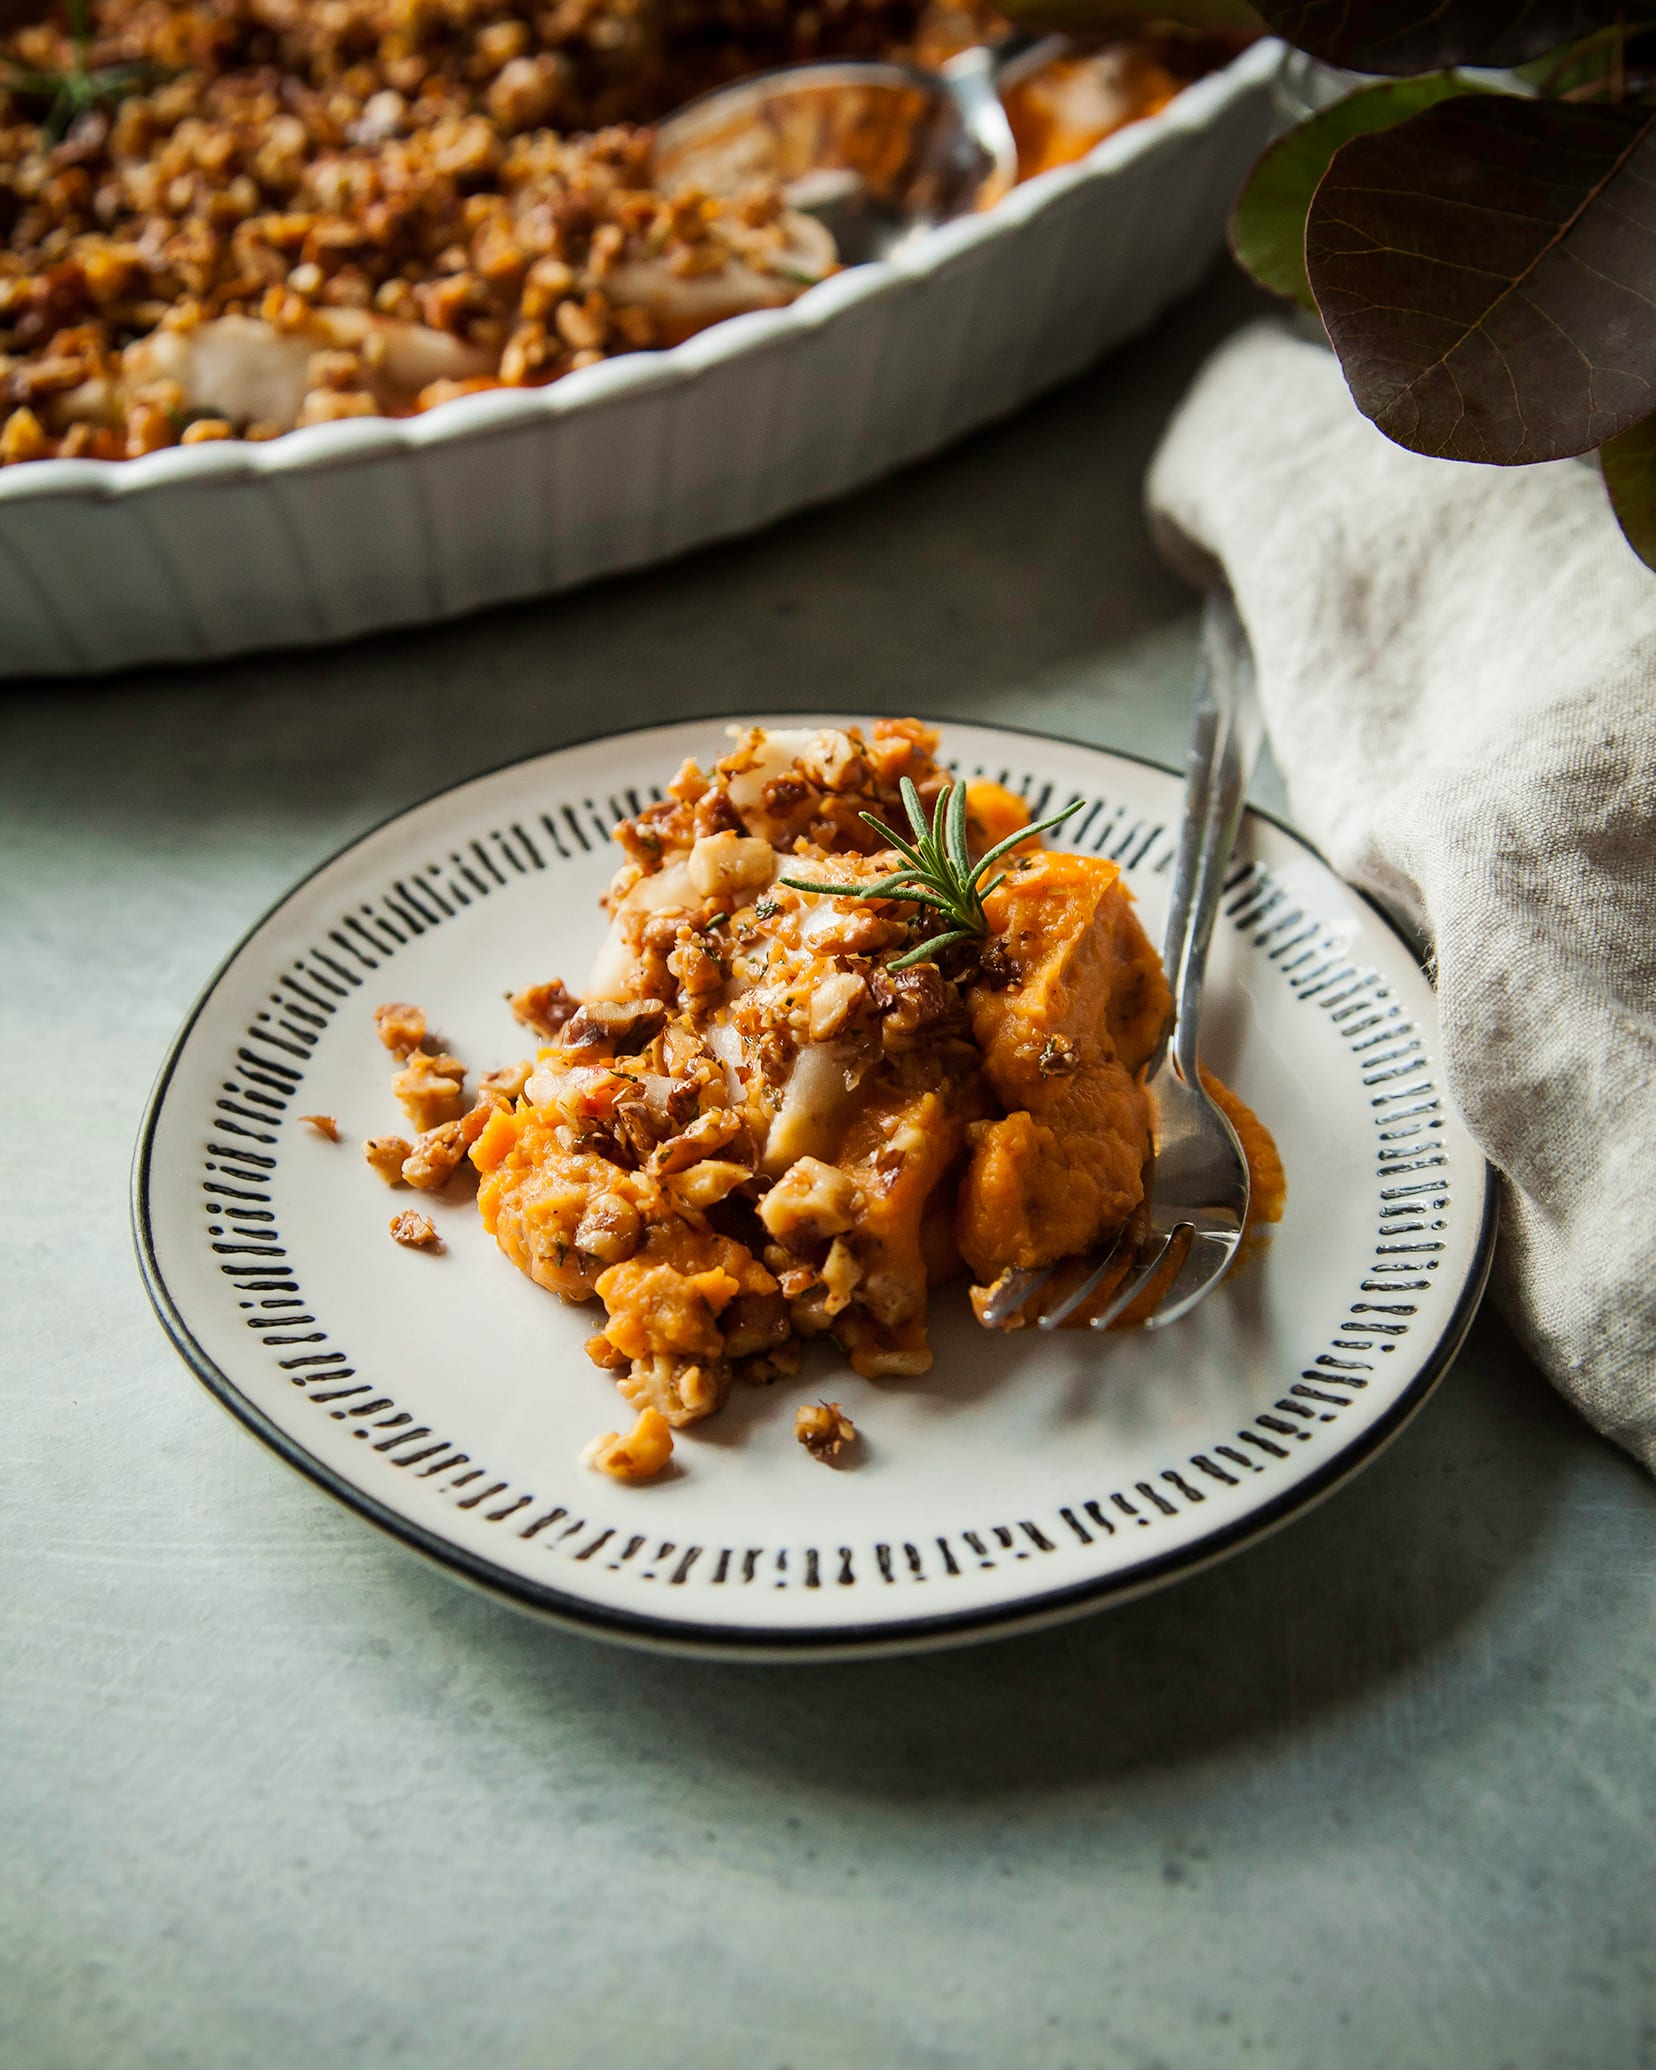 Image shows a single serving of sweet potato casserole on a plate.